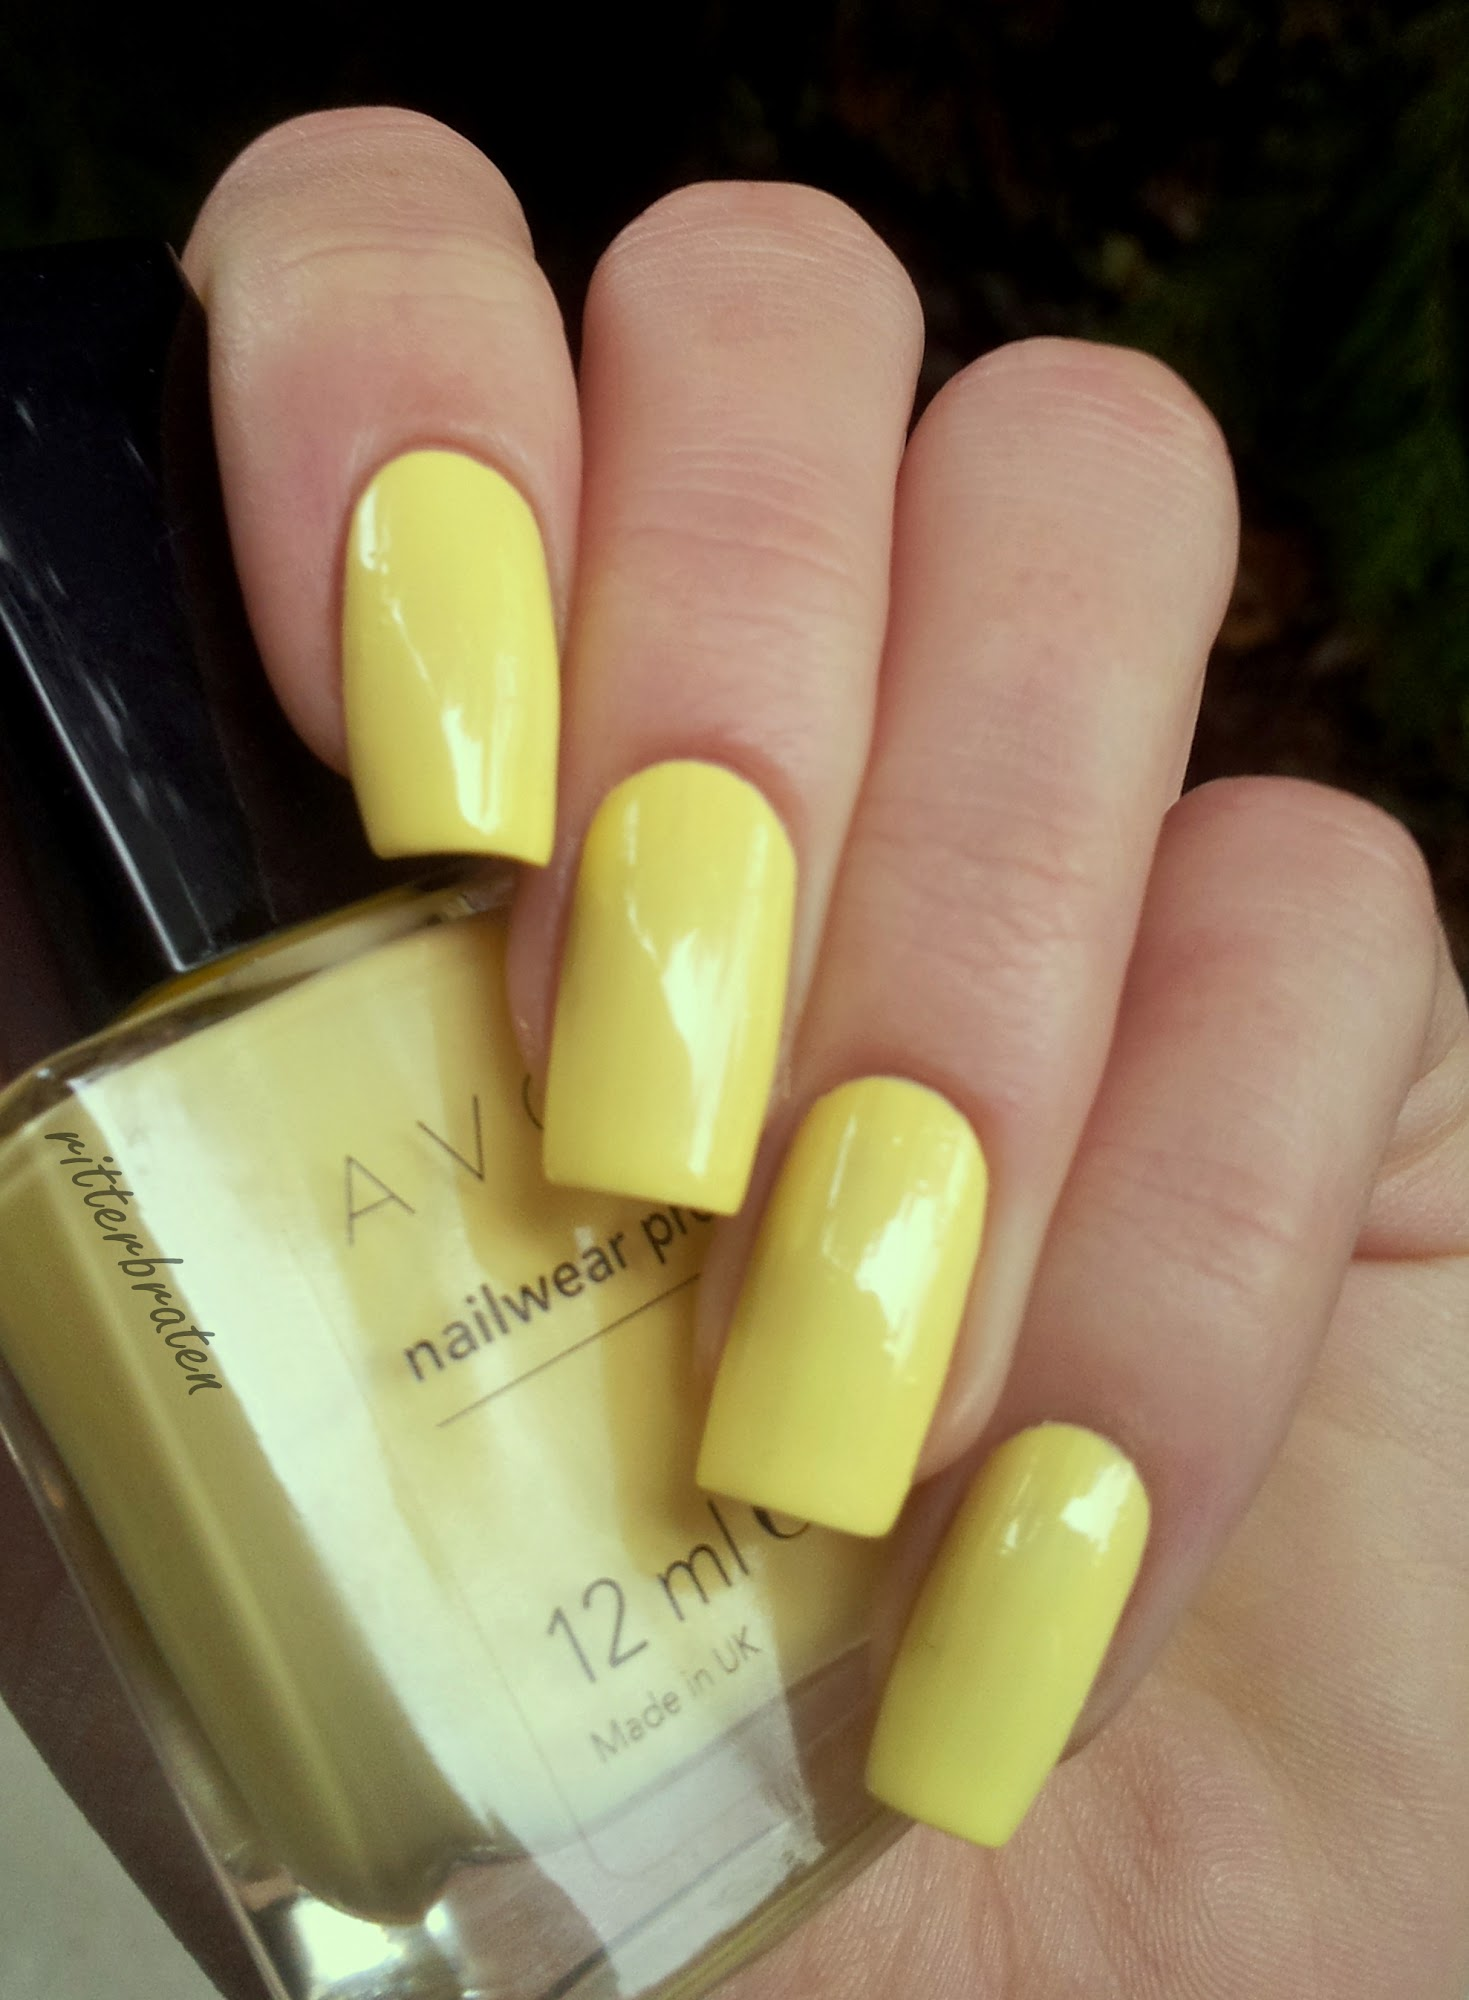 Avon Lemon Sugar